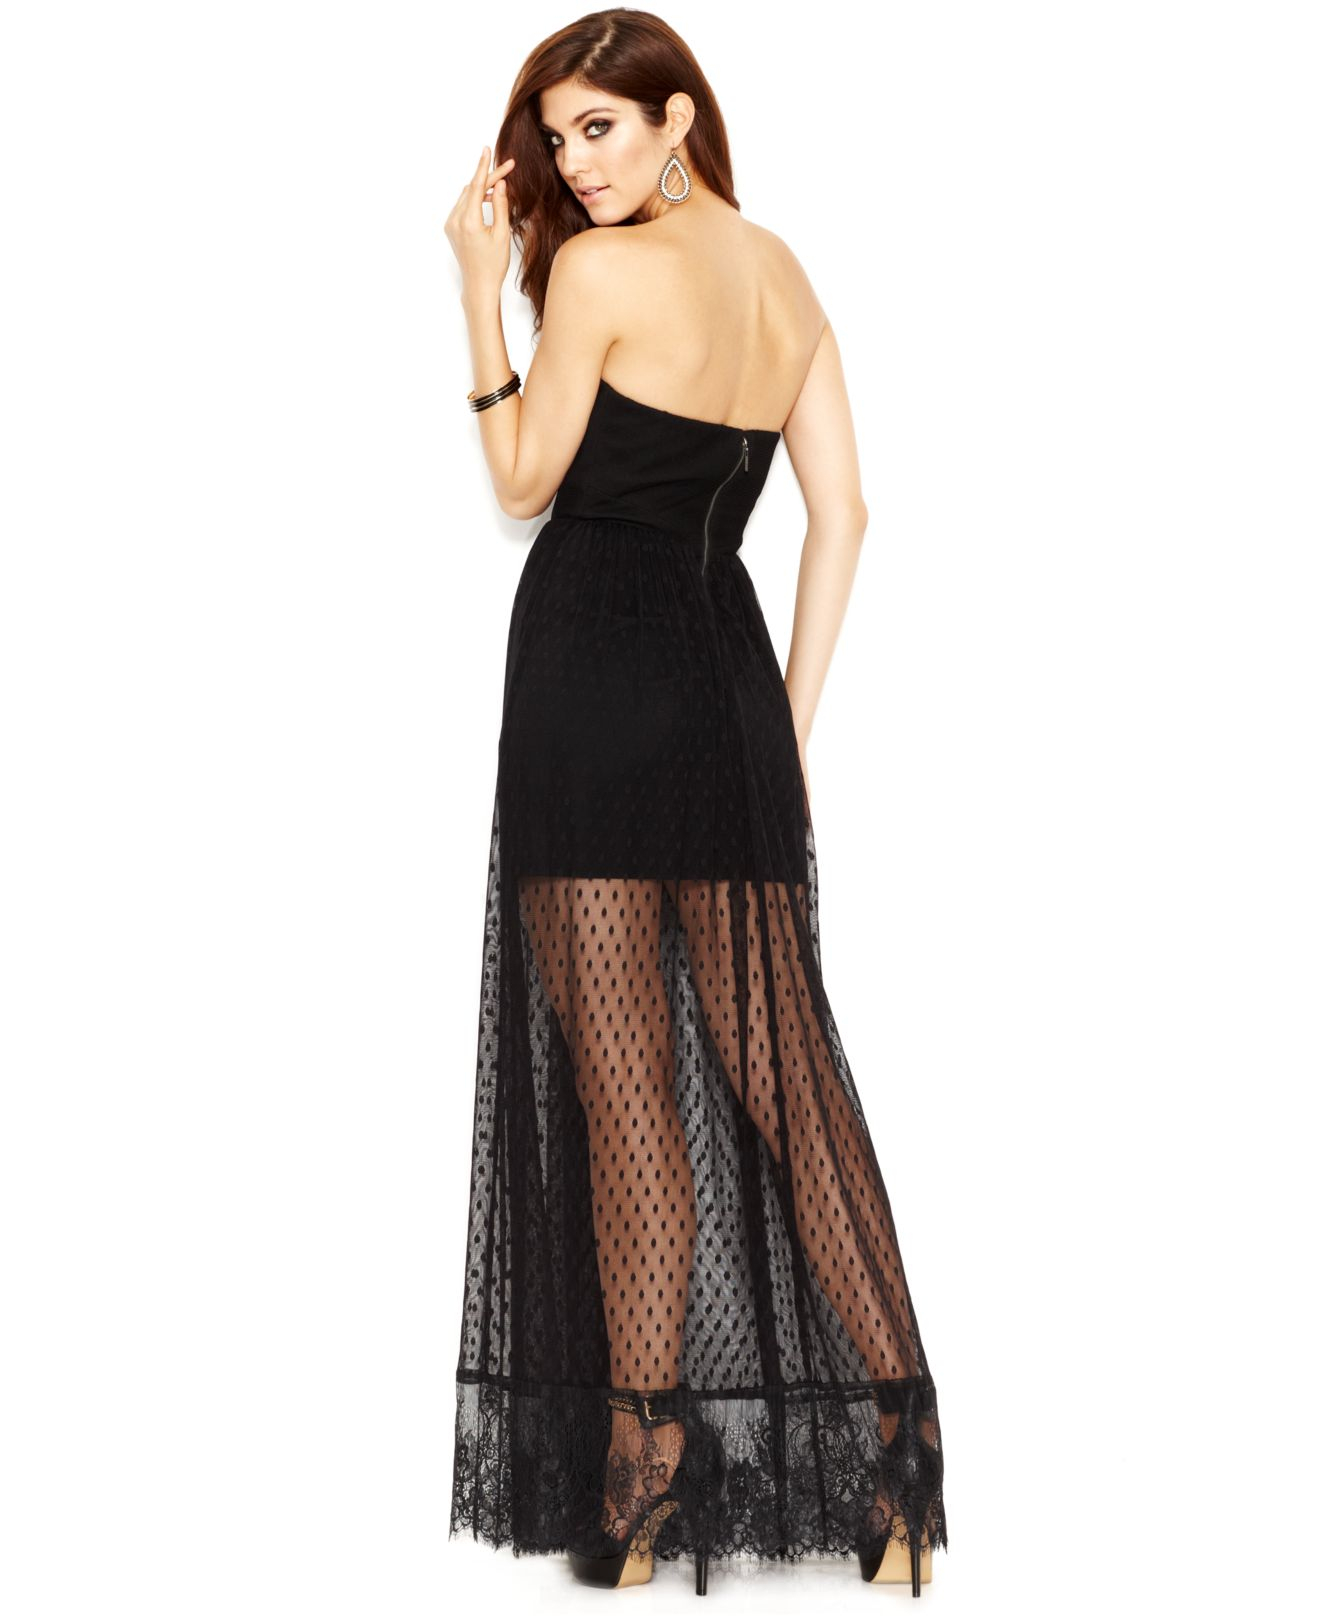 08400fef7c7 Guess Black Strapless Lace-Overlay Maxi Dress